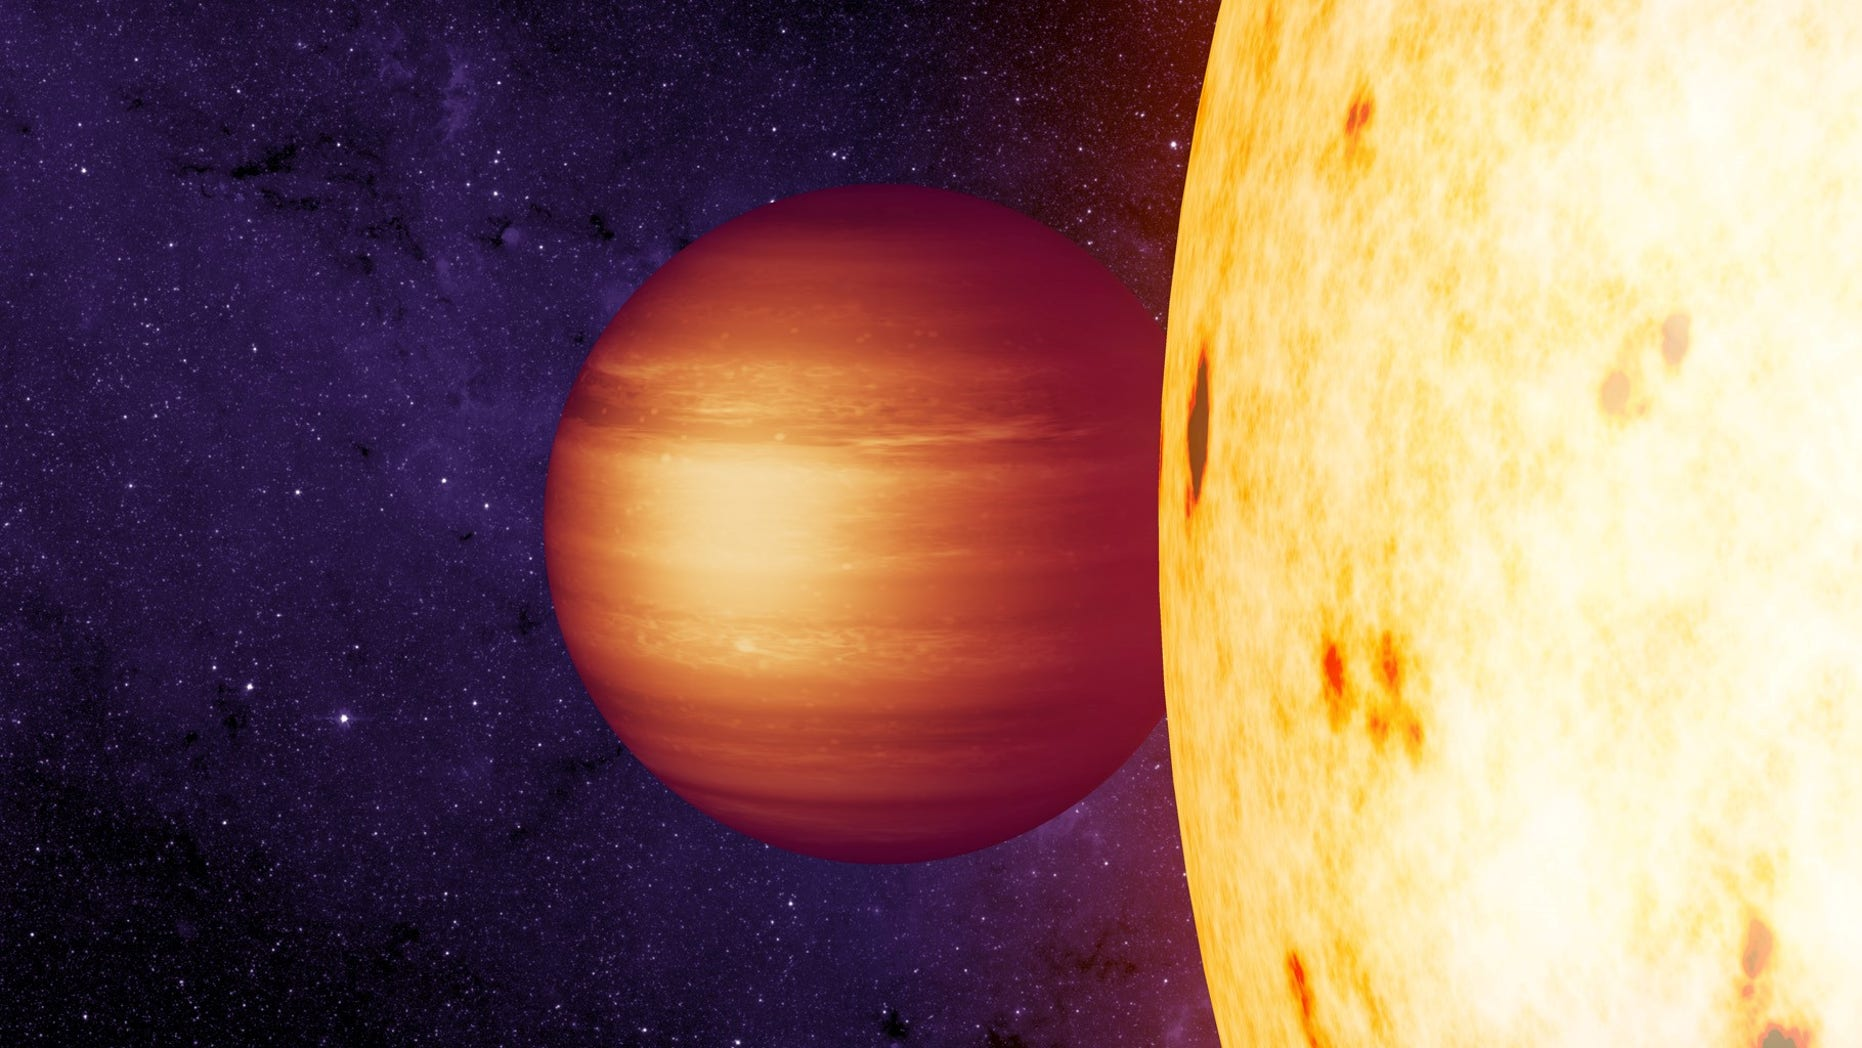 An artist's illustration of the hot Jupiter exoplanet CoRoT 2b, which has a strange westward-blowing hotspot in its atmosphere, scientists say.